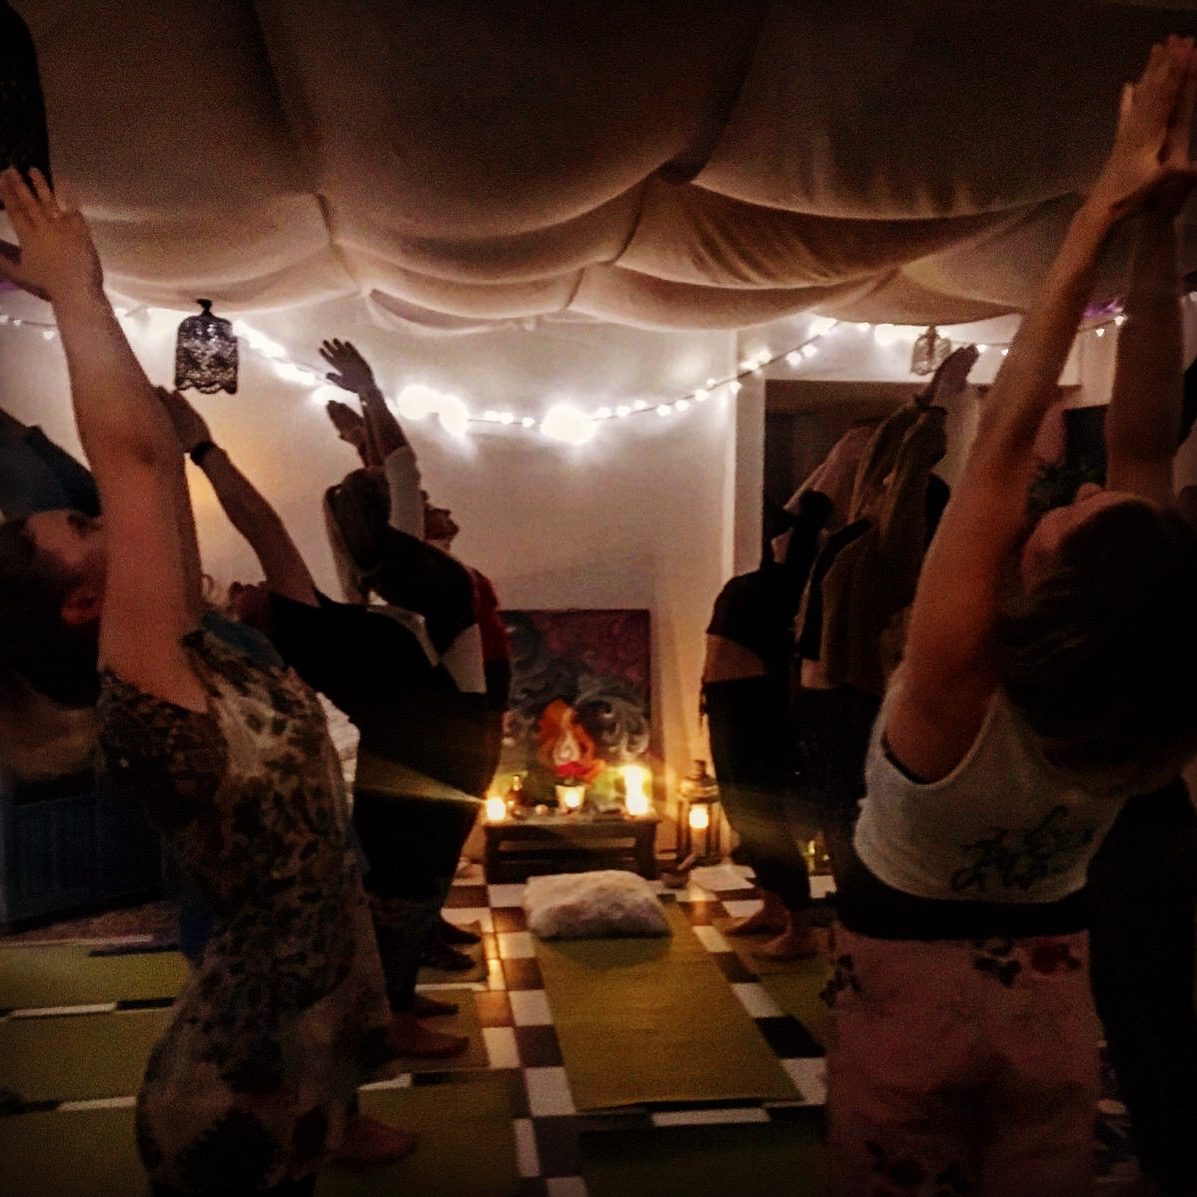 Ookushana -Massage, Yoga, EventsIntriguing & inviting - Ookushana has become our go to venue for hosting pop-up massage and yoga days in Leeds.The quirky, cosmic and homely Ookushana workshop adds yet another layer to your InnerSense Massage experience.We are excited to also be collaborating on special events held in this endearing space.www.ookushana.com